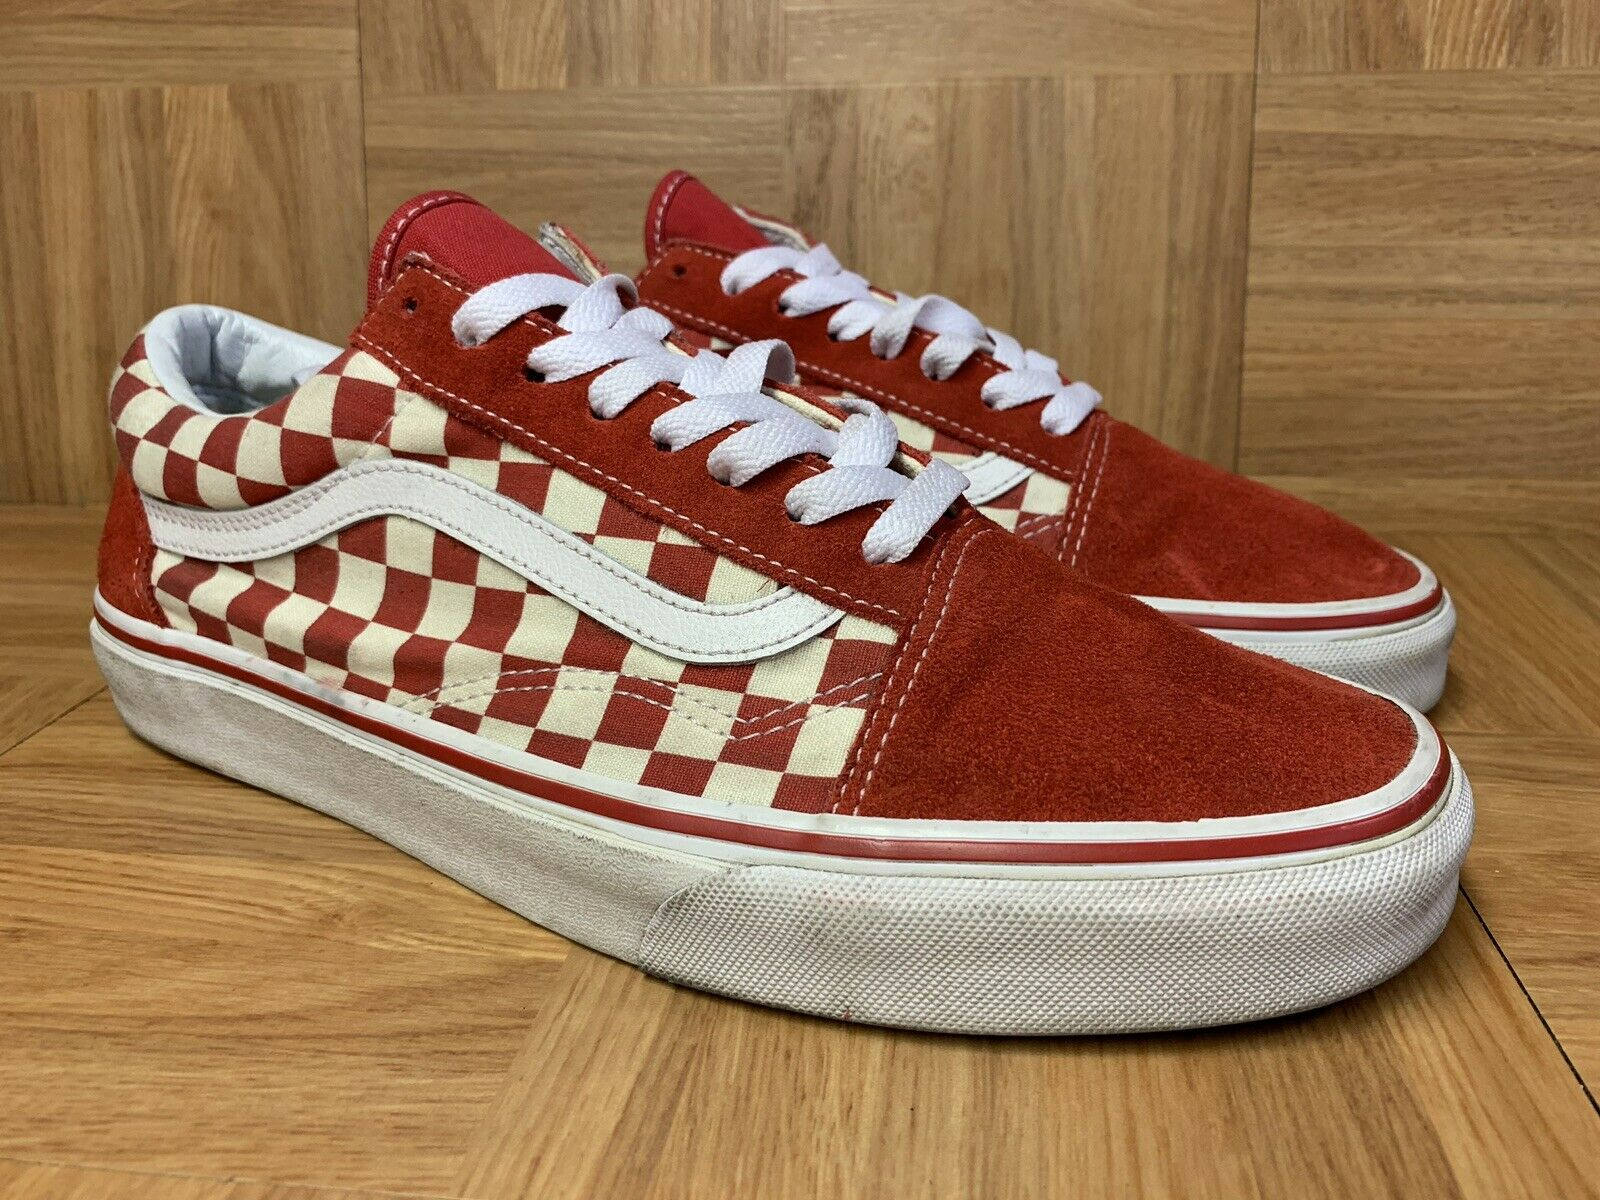 Vans Old Skool Checkerboard Racing Red